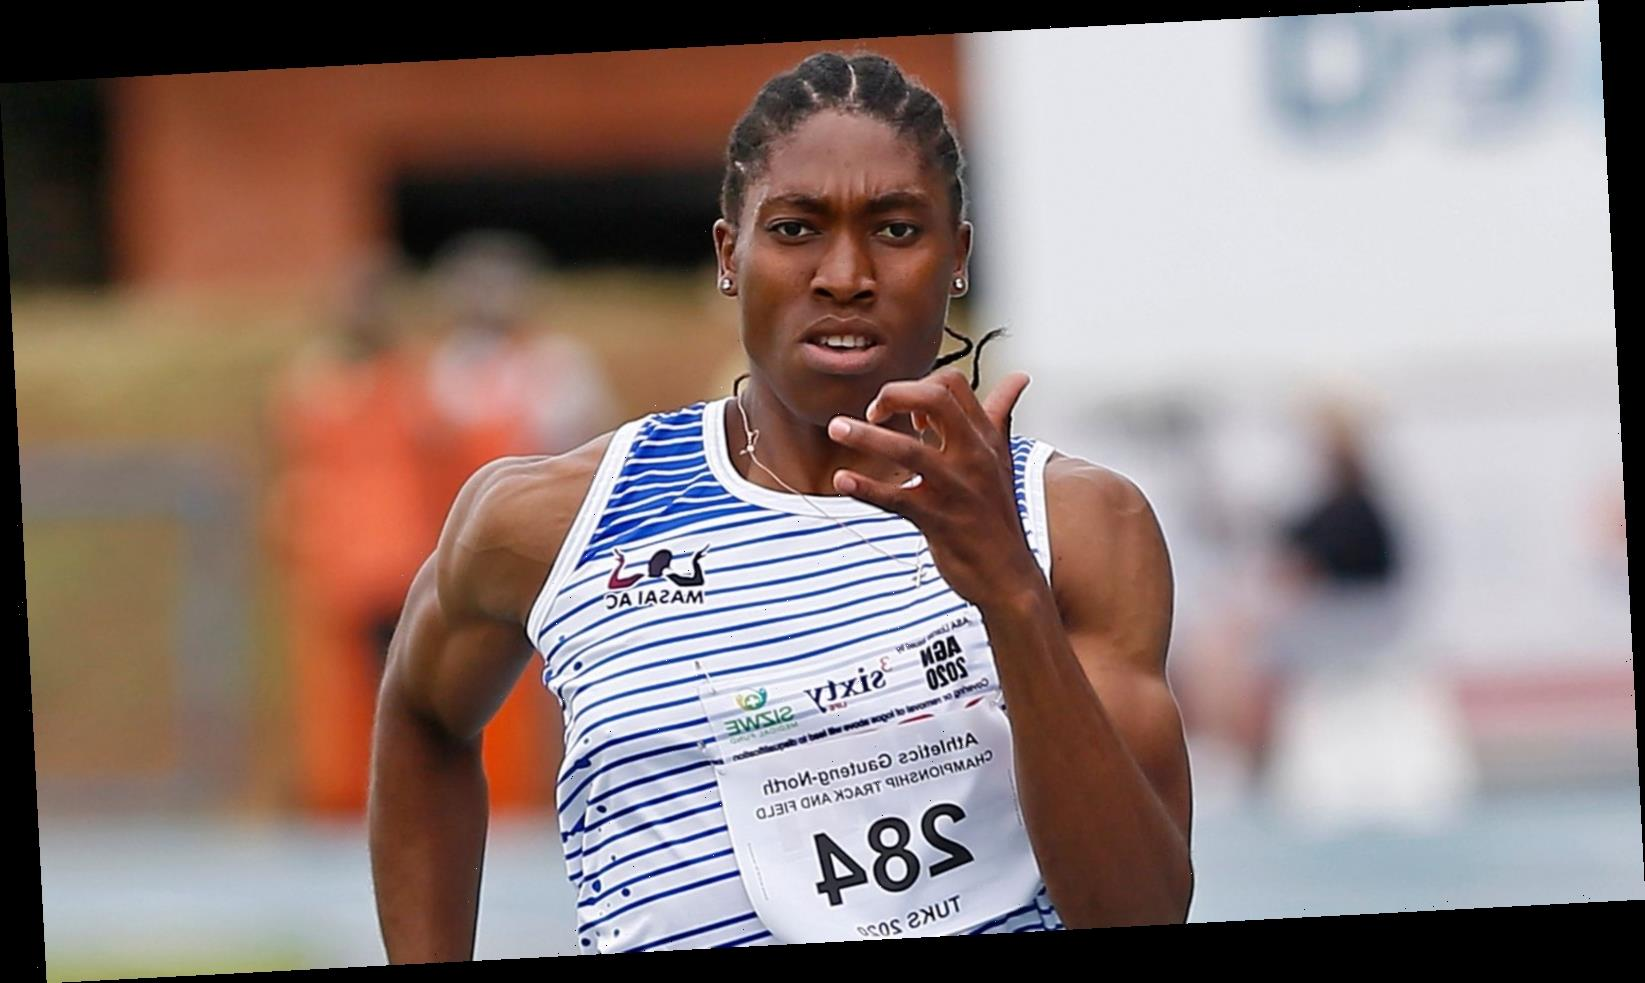 Caster Semenya to appeal to European Court of Human Rights over testosterone ruling